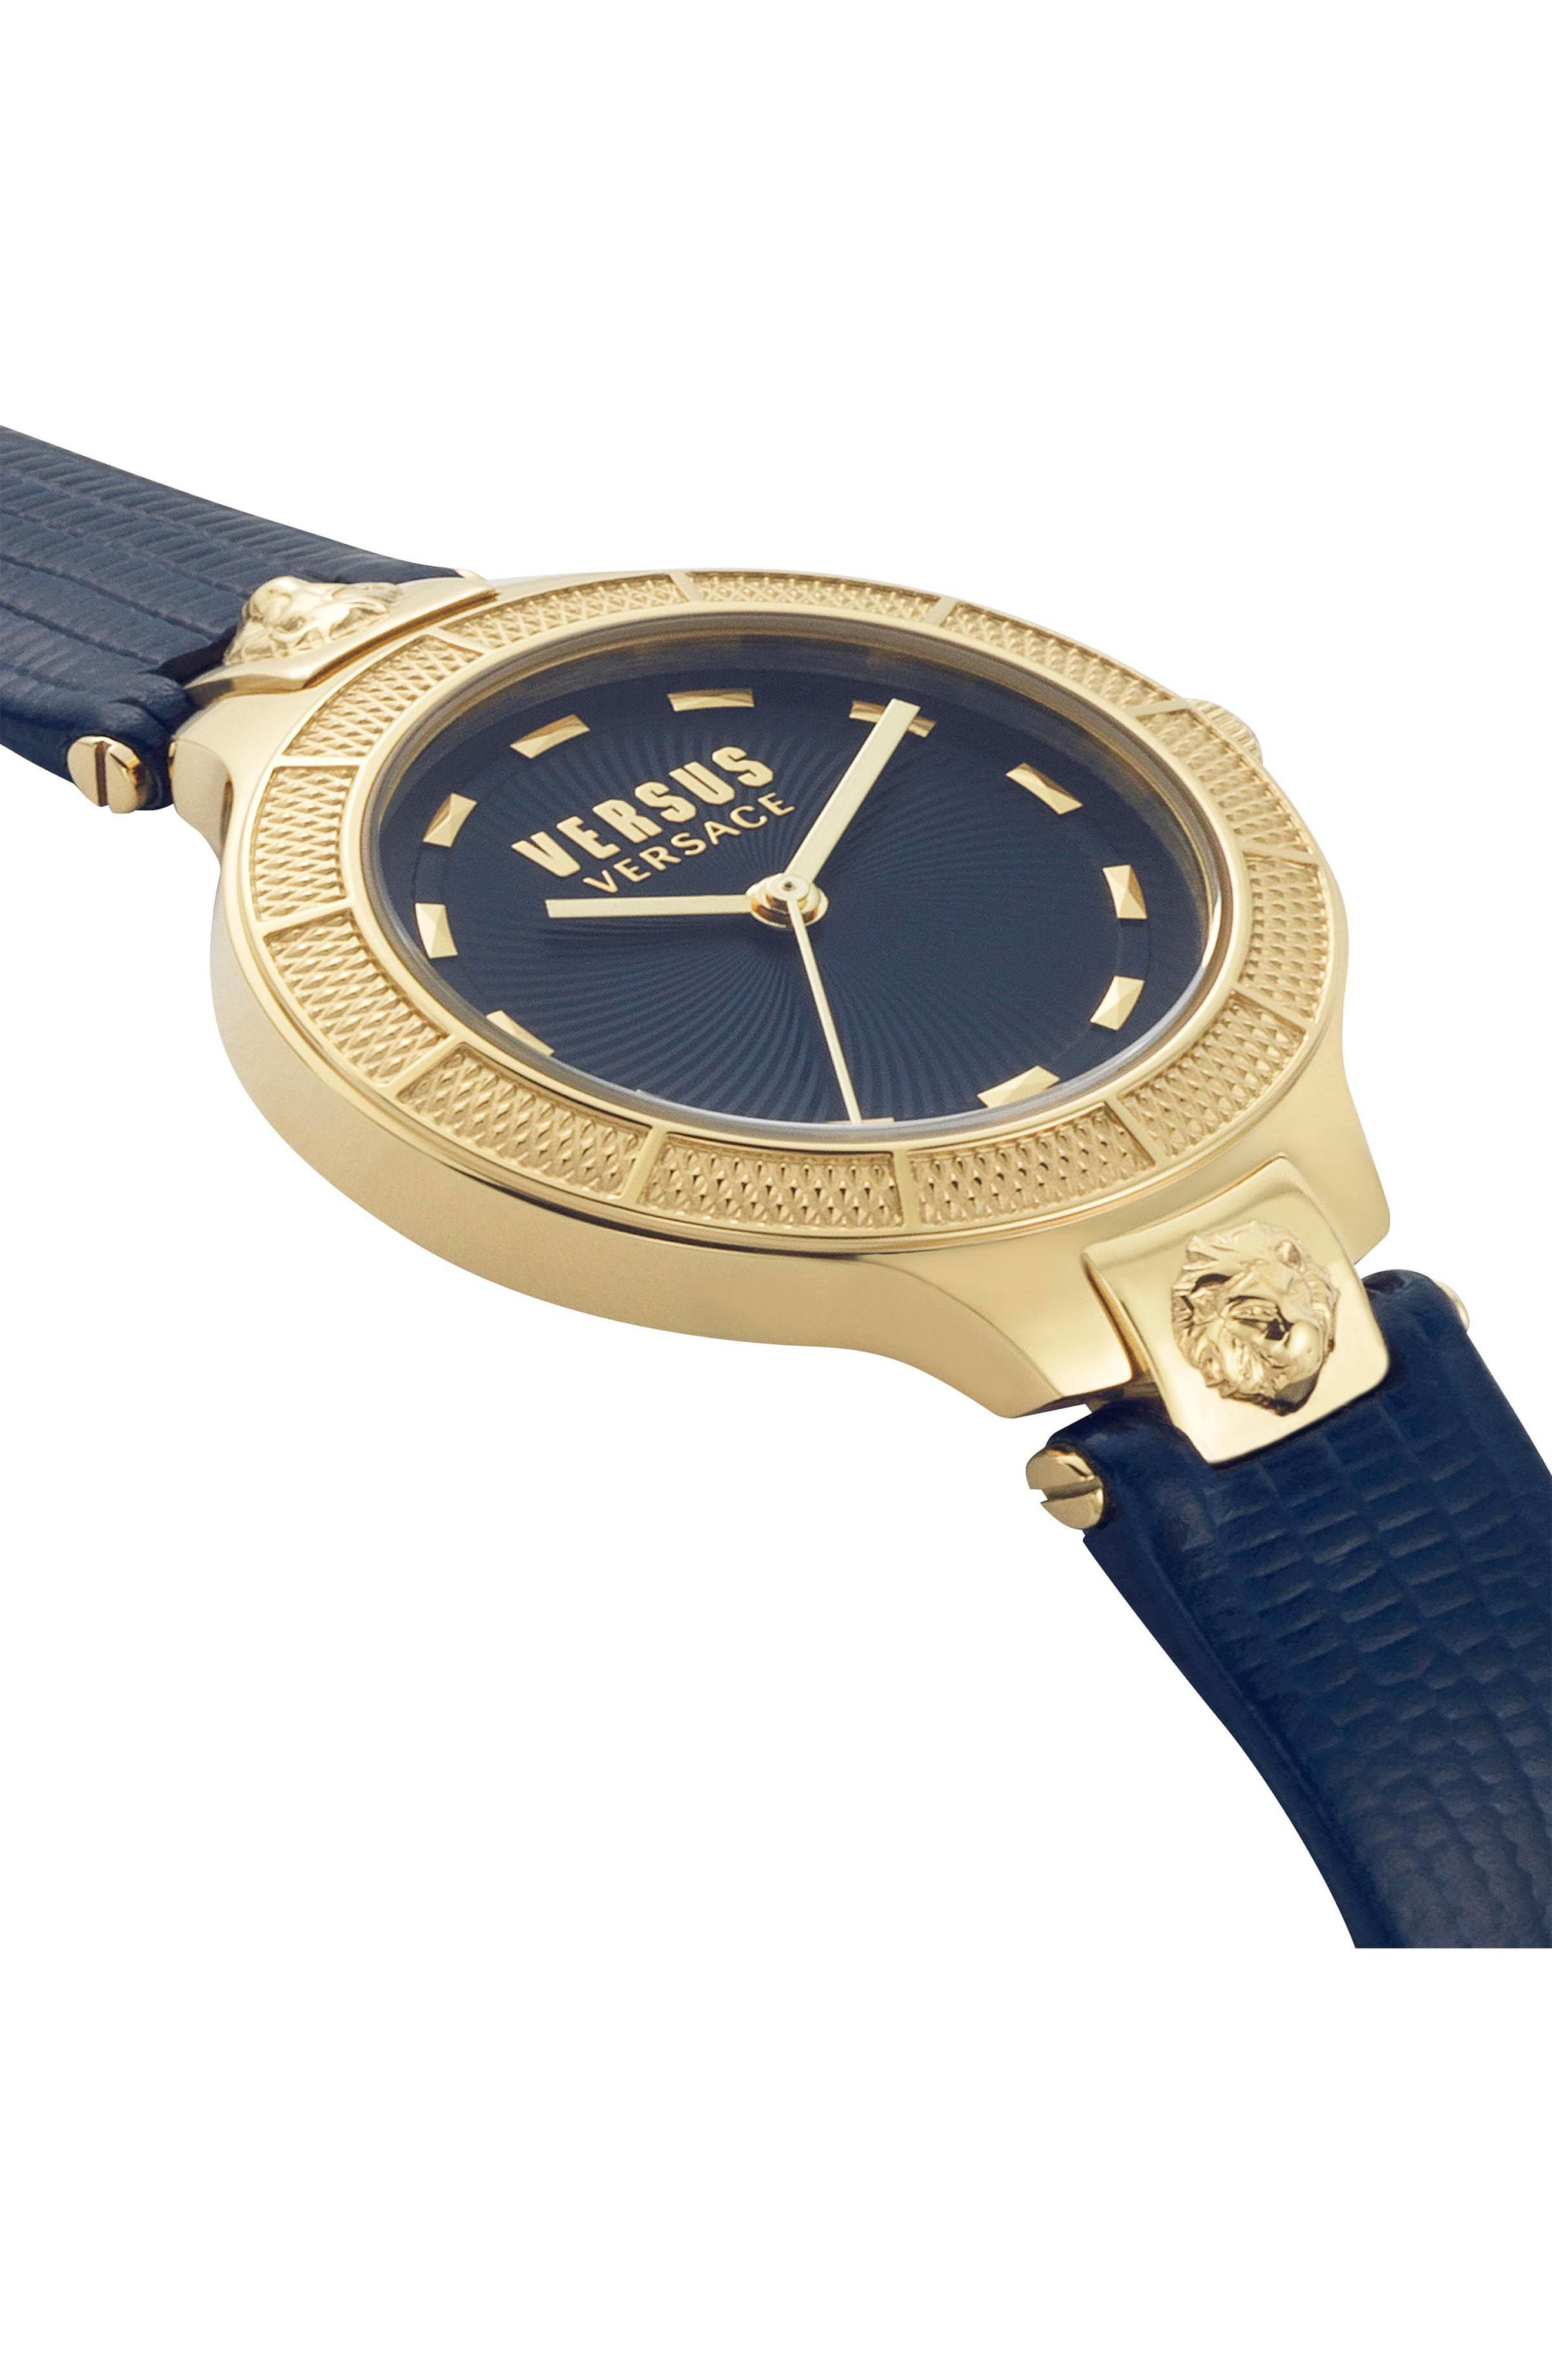 VERSUS VERSACE, Claremont Leather Strap Watch, 32mm, Alternate thumbnail 3, color, BLUE/ GOLD